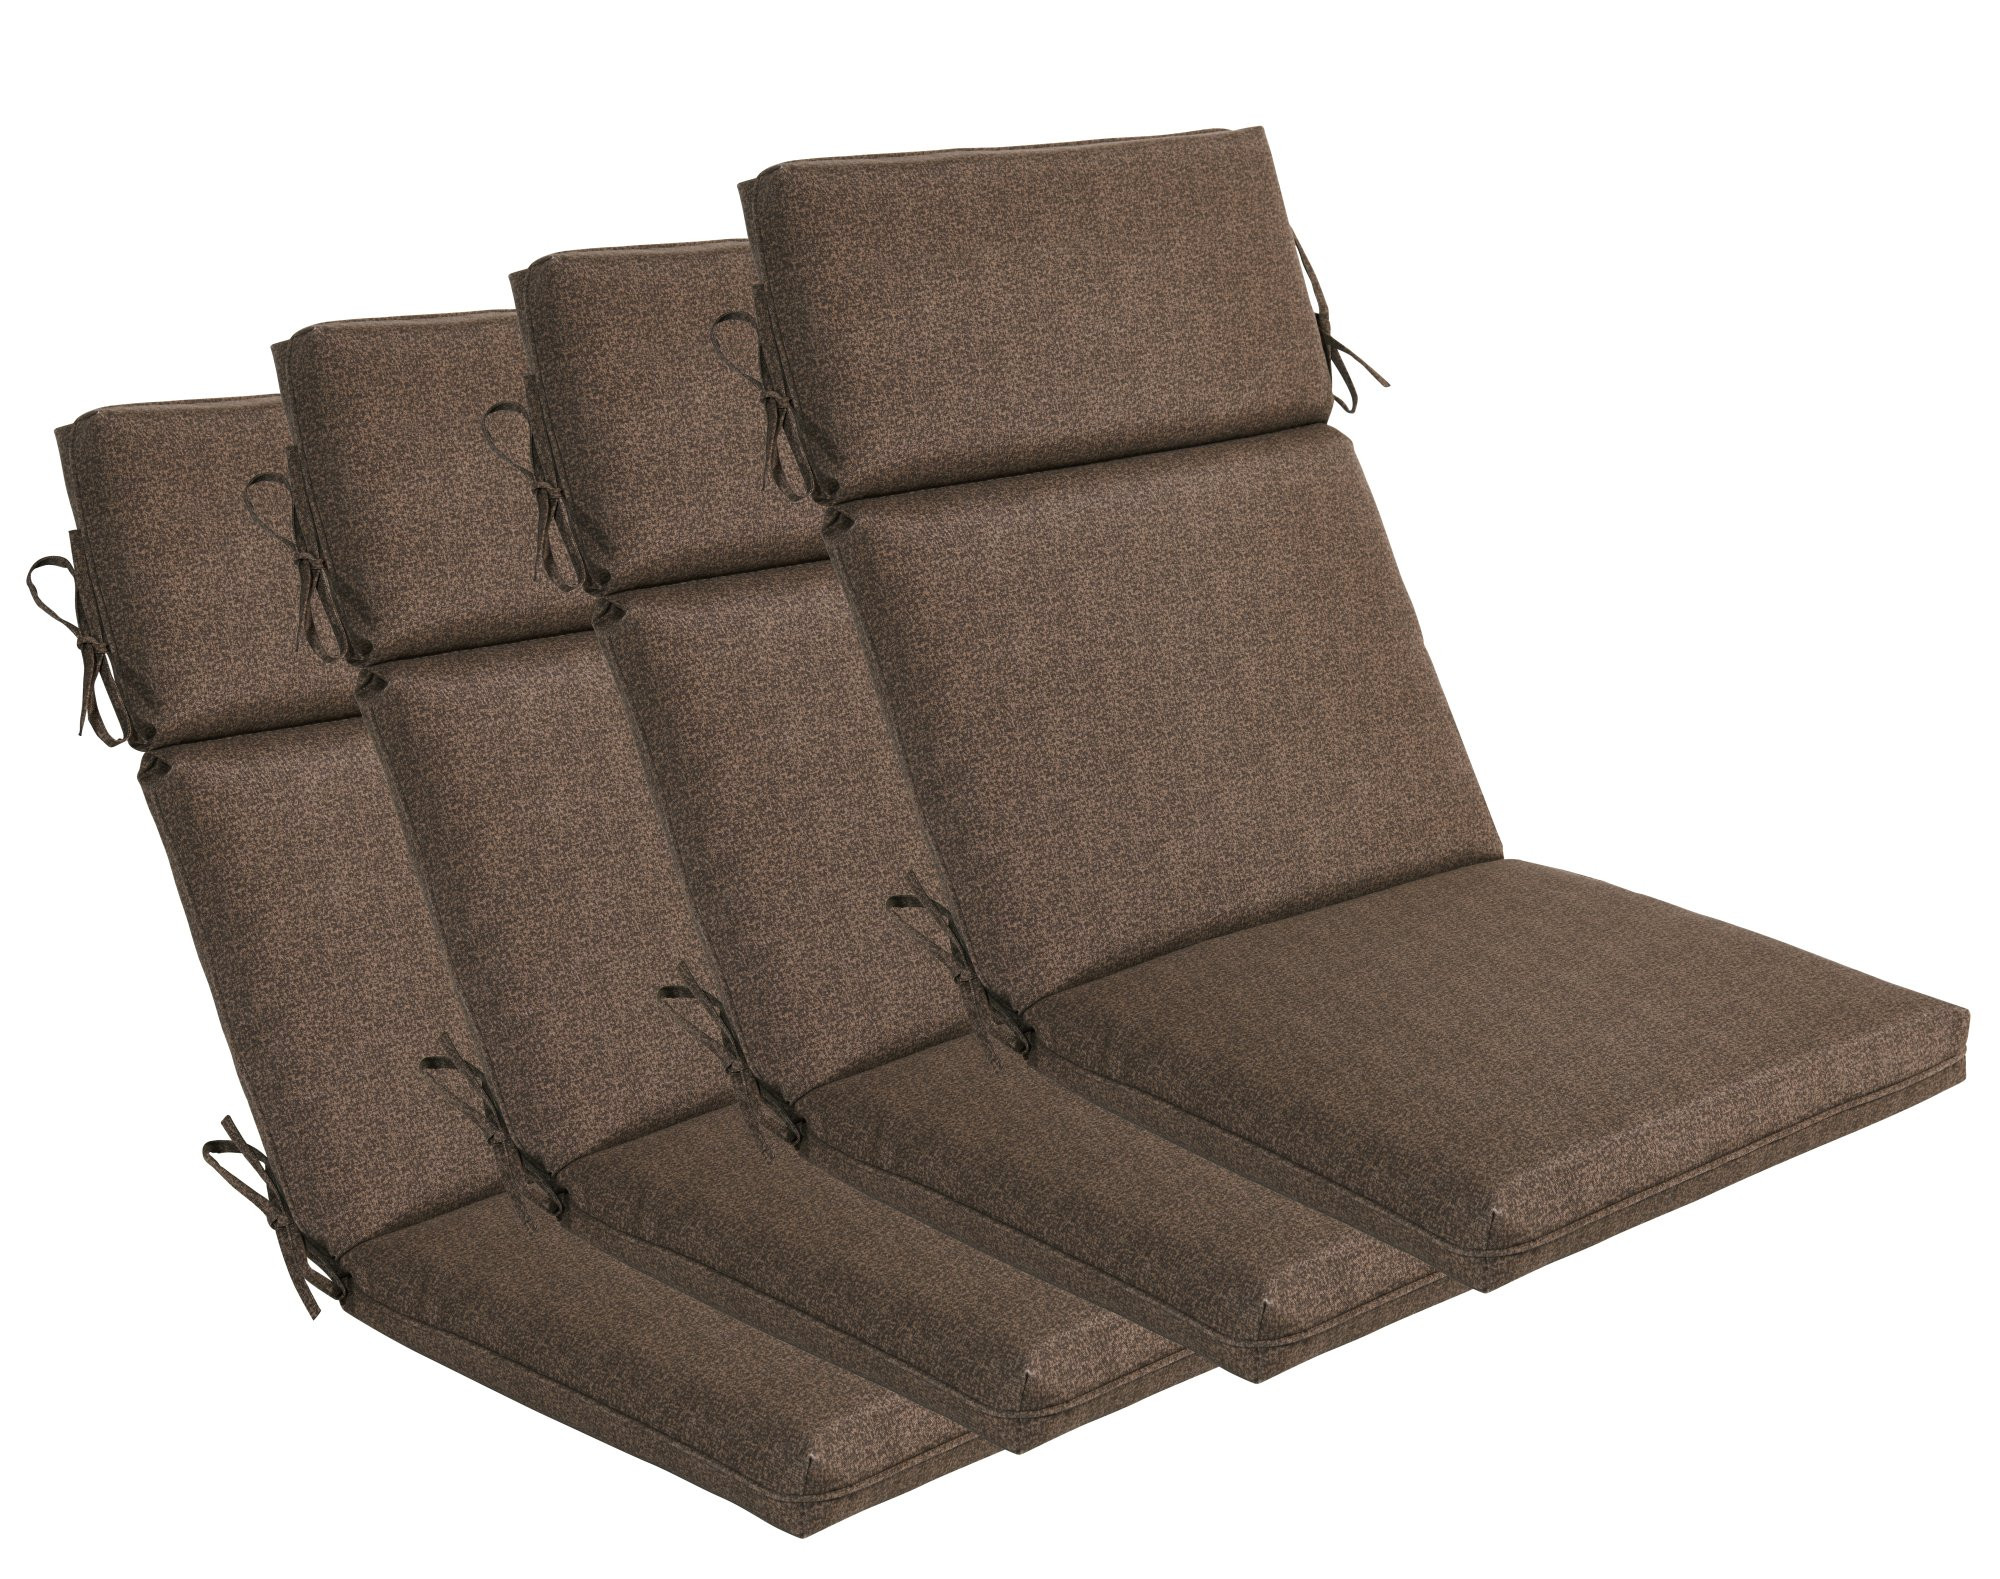 Best ideas about Outdoor Replacement Cushions . Save or Pin Amazon Bossima Indoor Outdoor Coffee Seat Pad Set of Now.